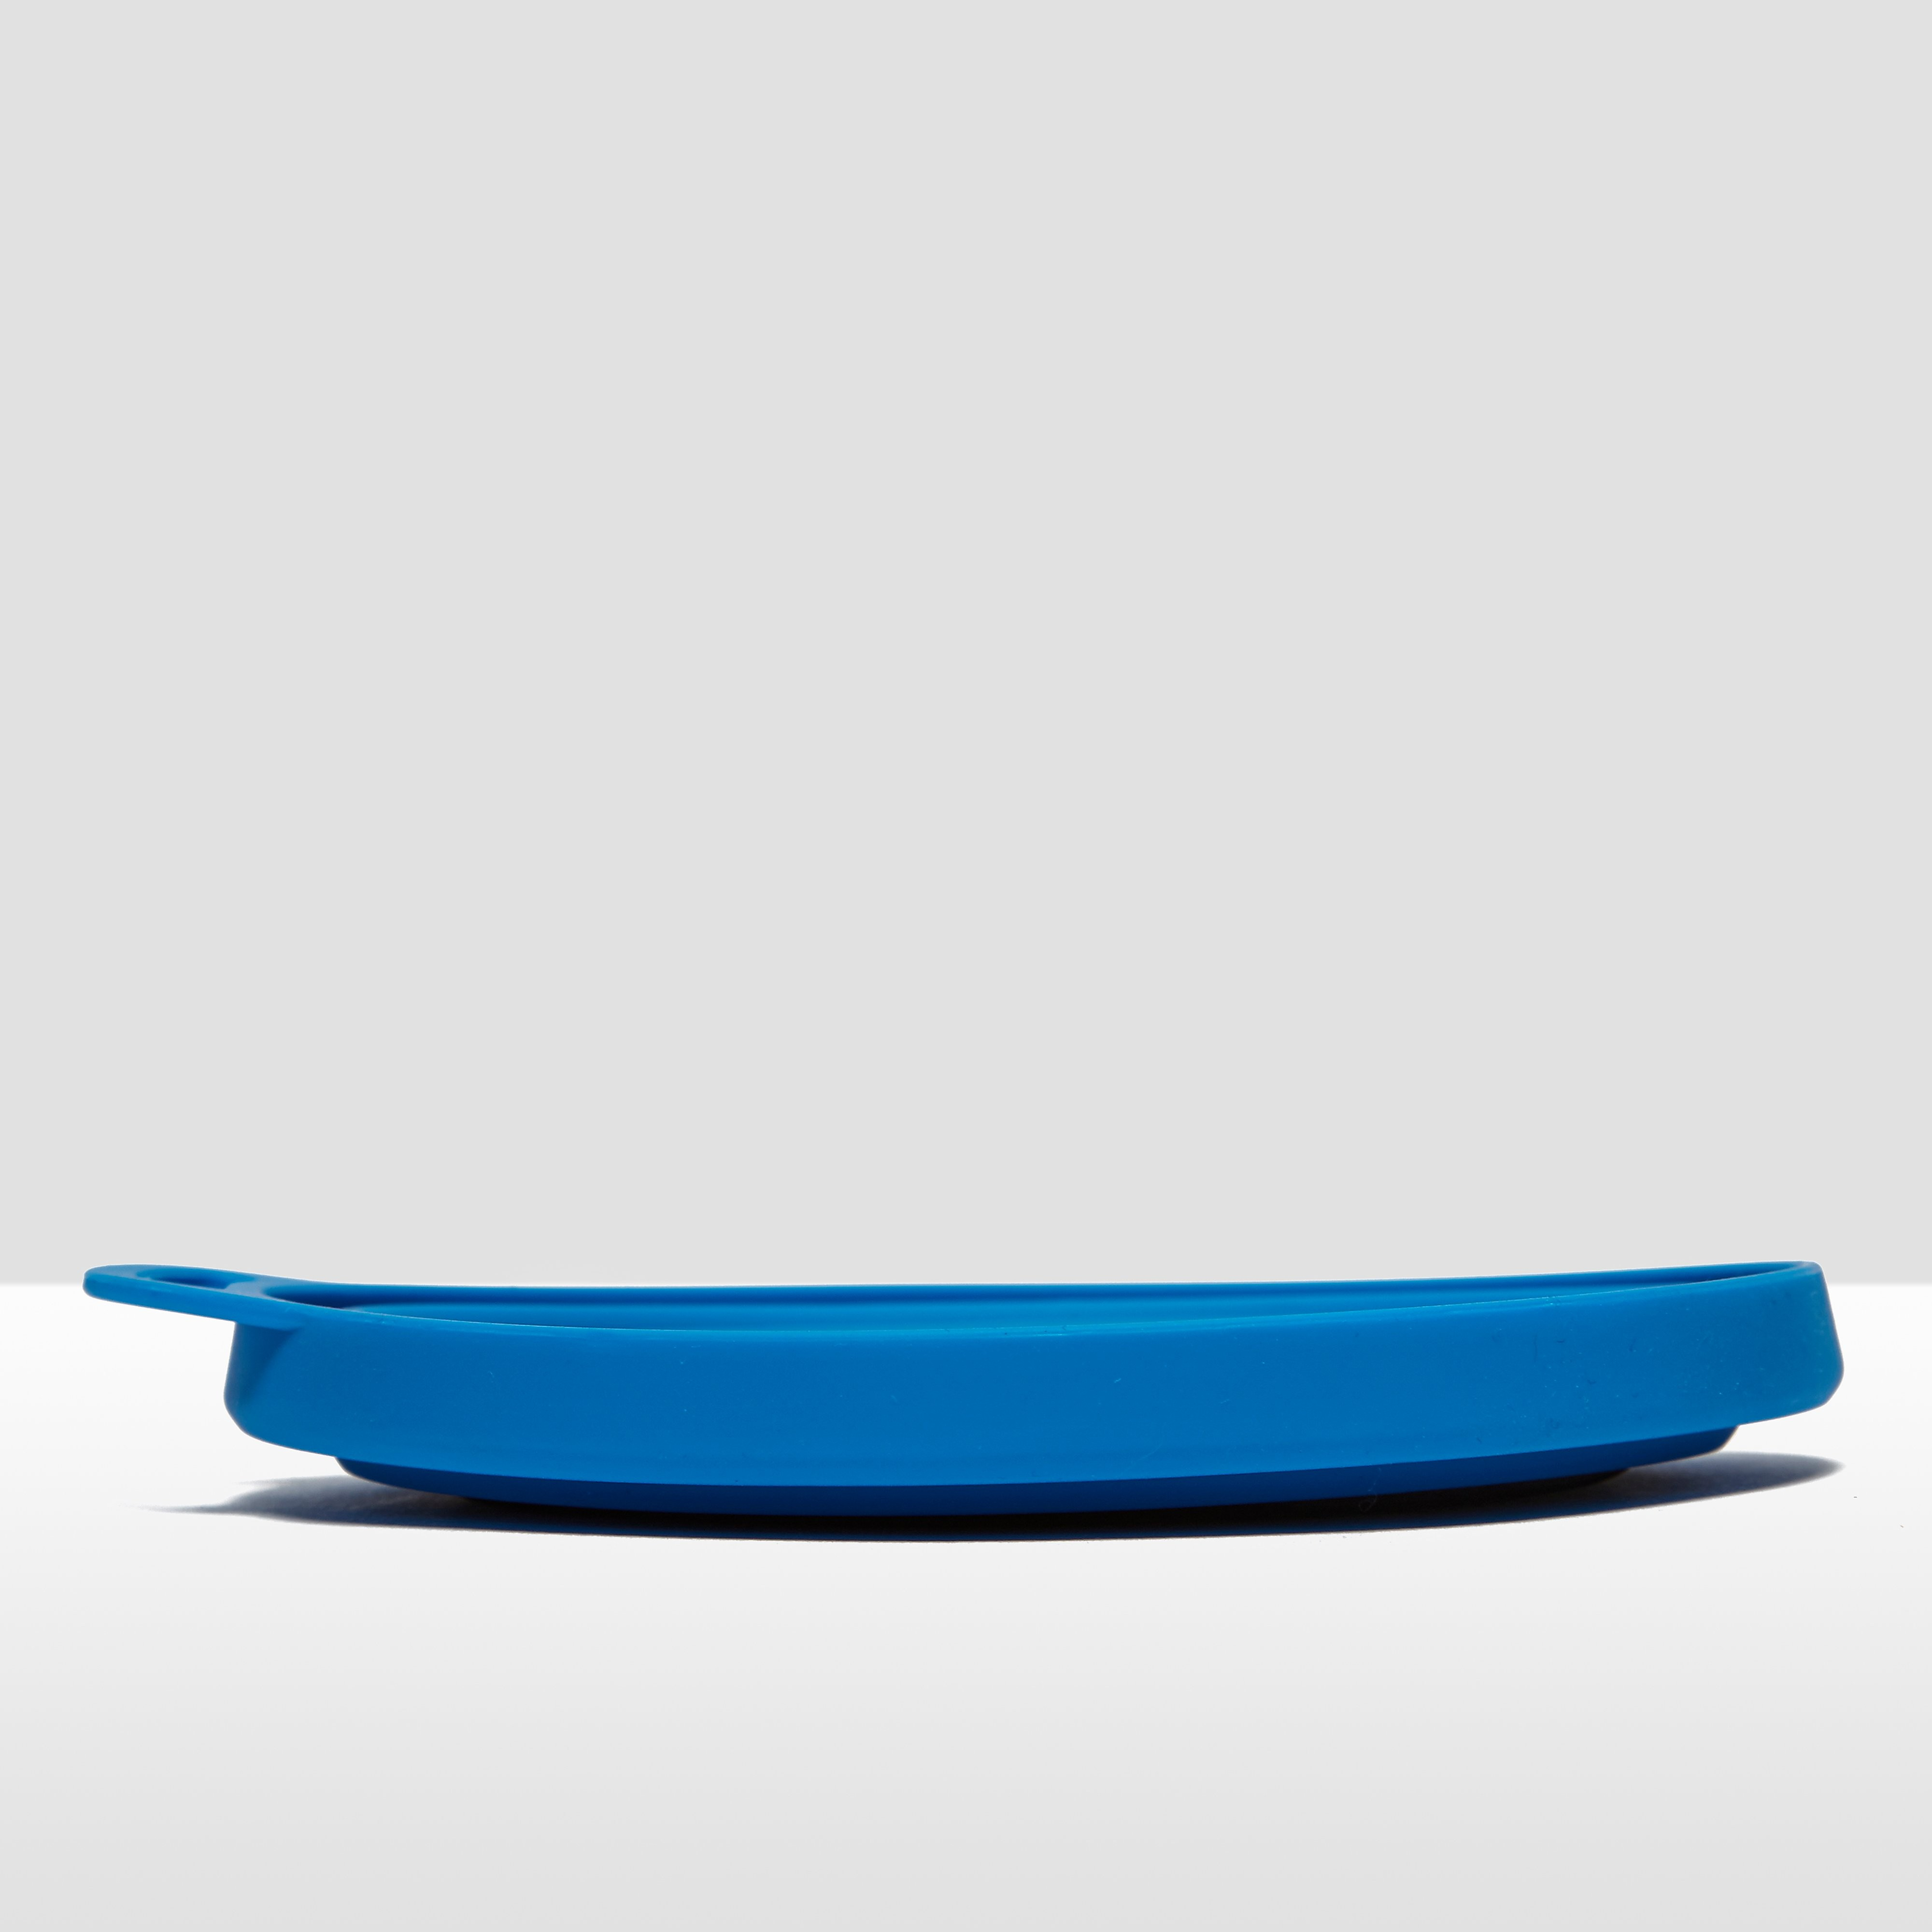 LIFEVENTURE Silicon Ellipse Bowl